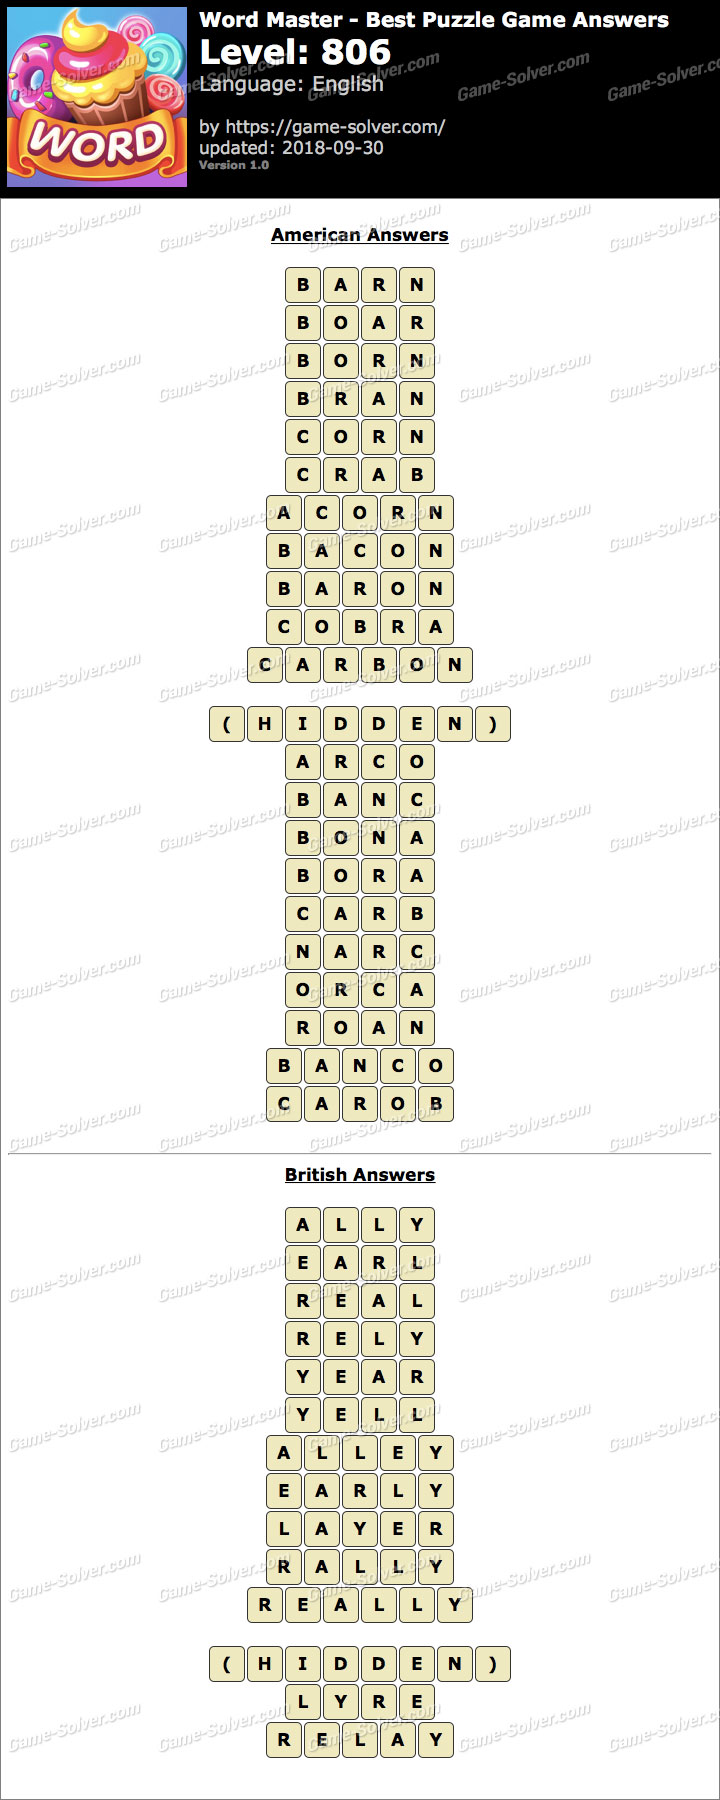 Word Master-Best Puzzle Game Level 806 Answers